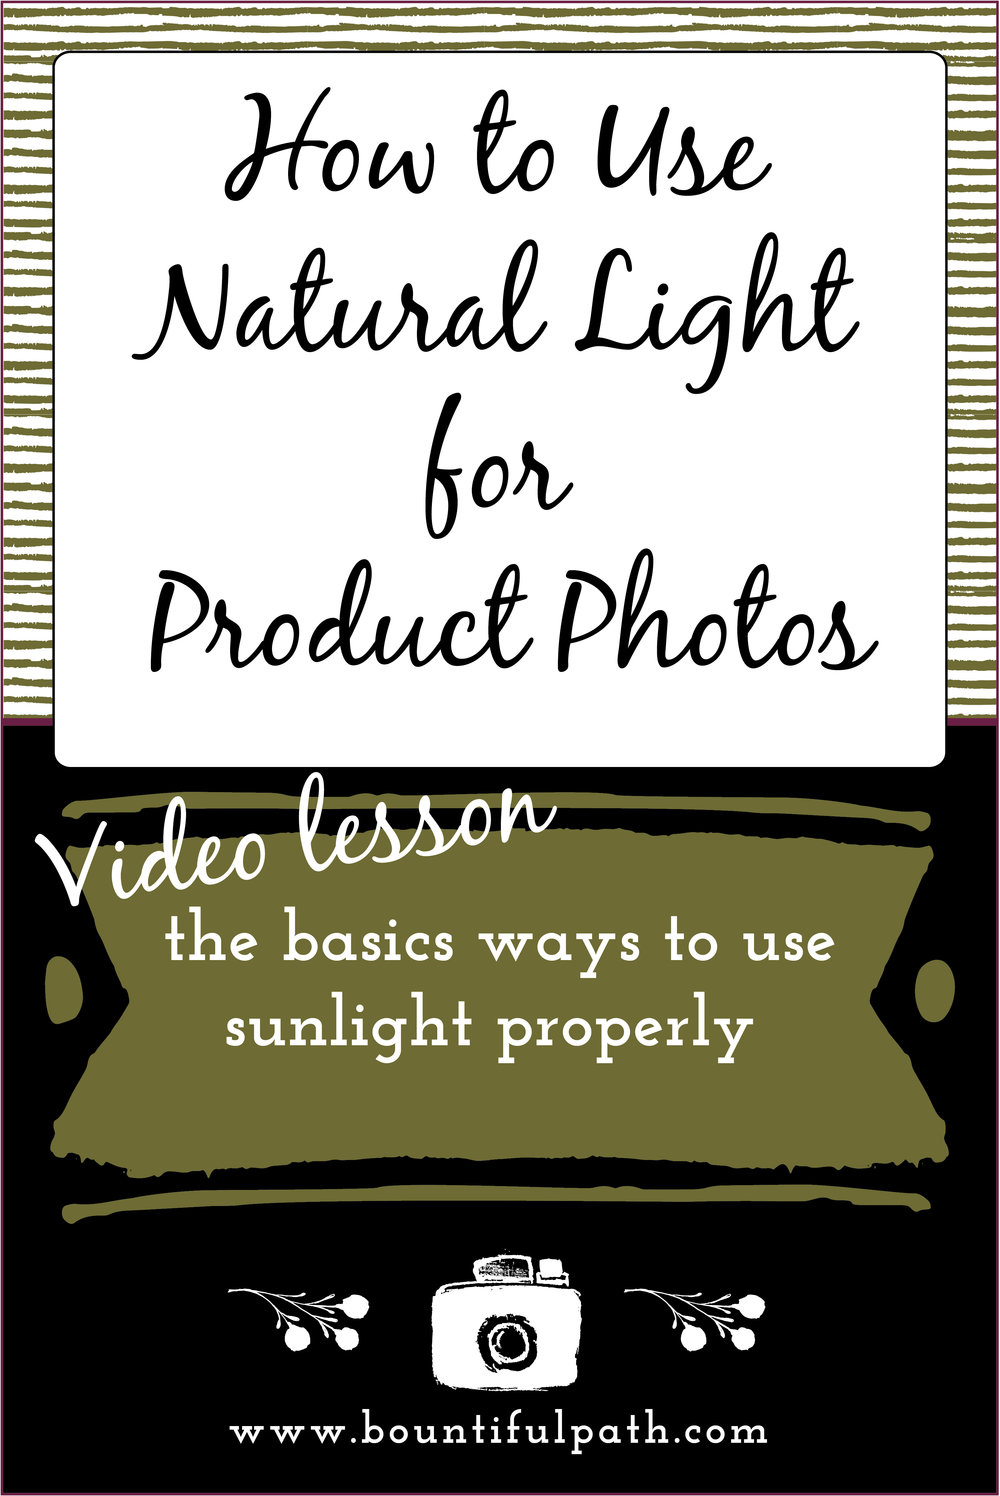 how to use natural light for product photos from Bountiful Path